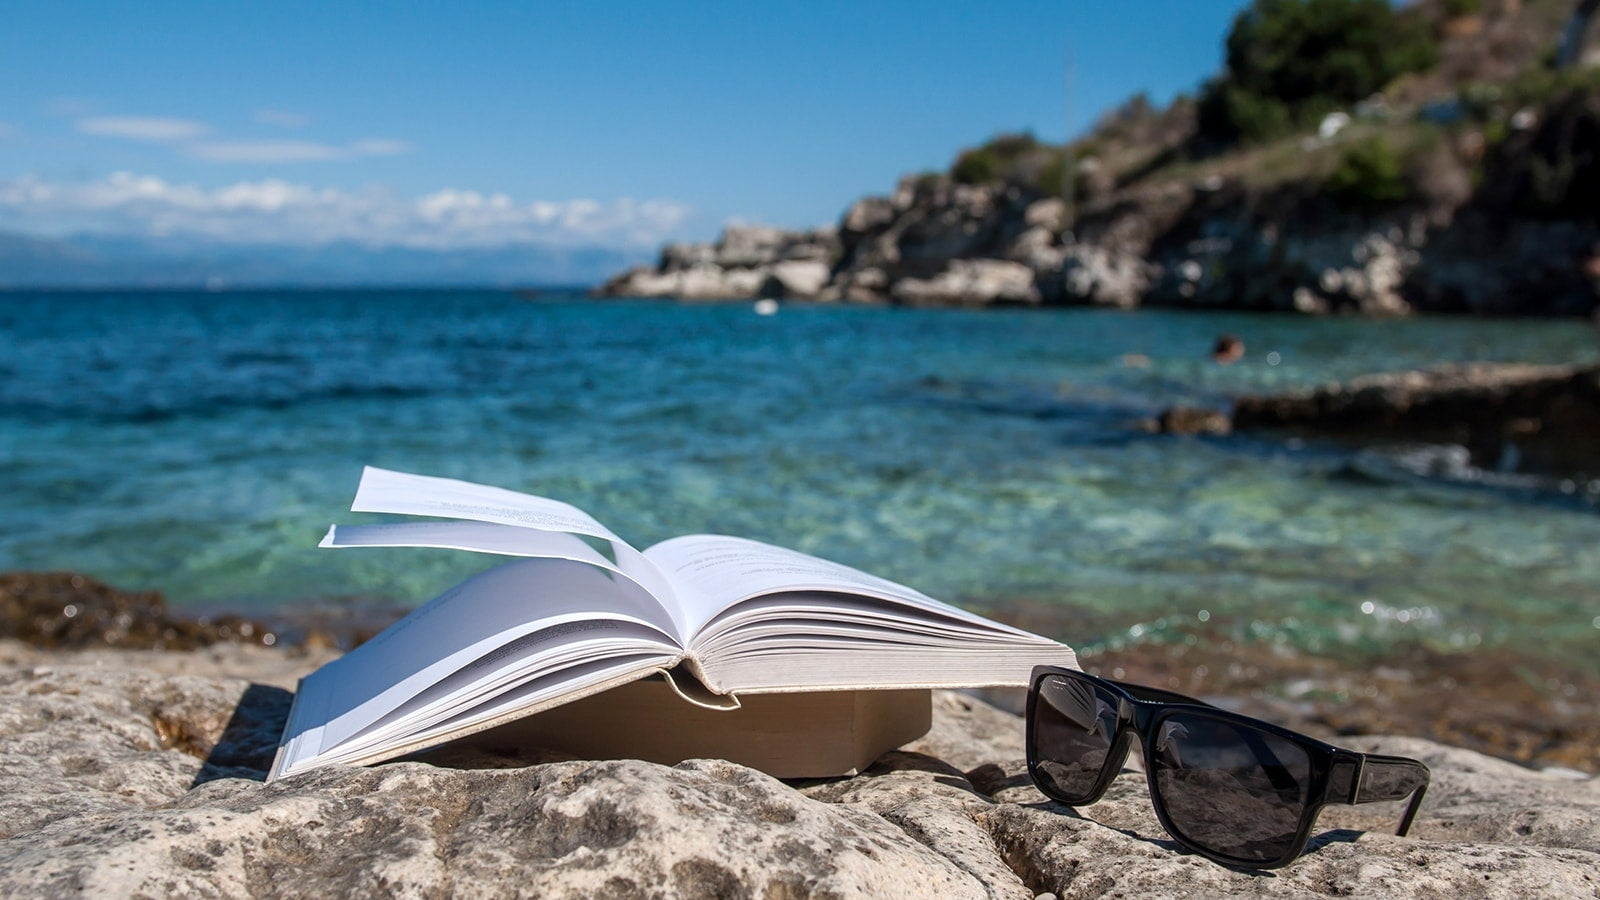 Book open next to sunglasses in front of blue sea